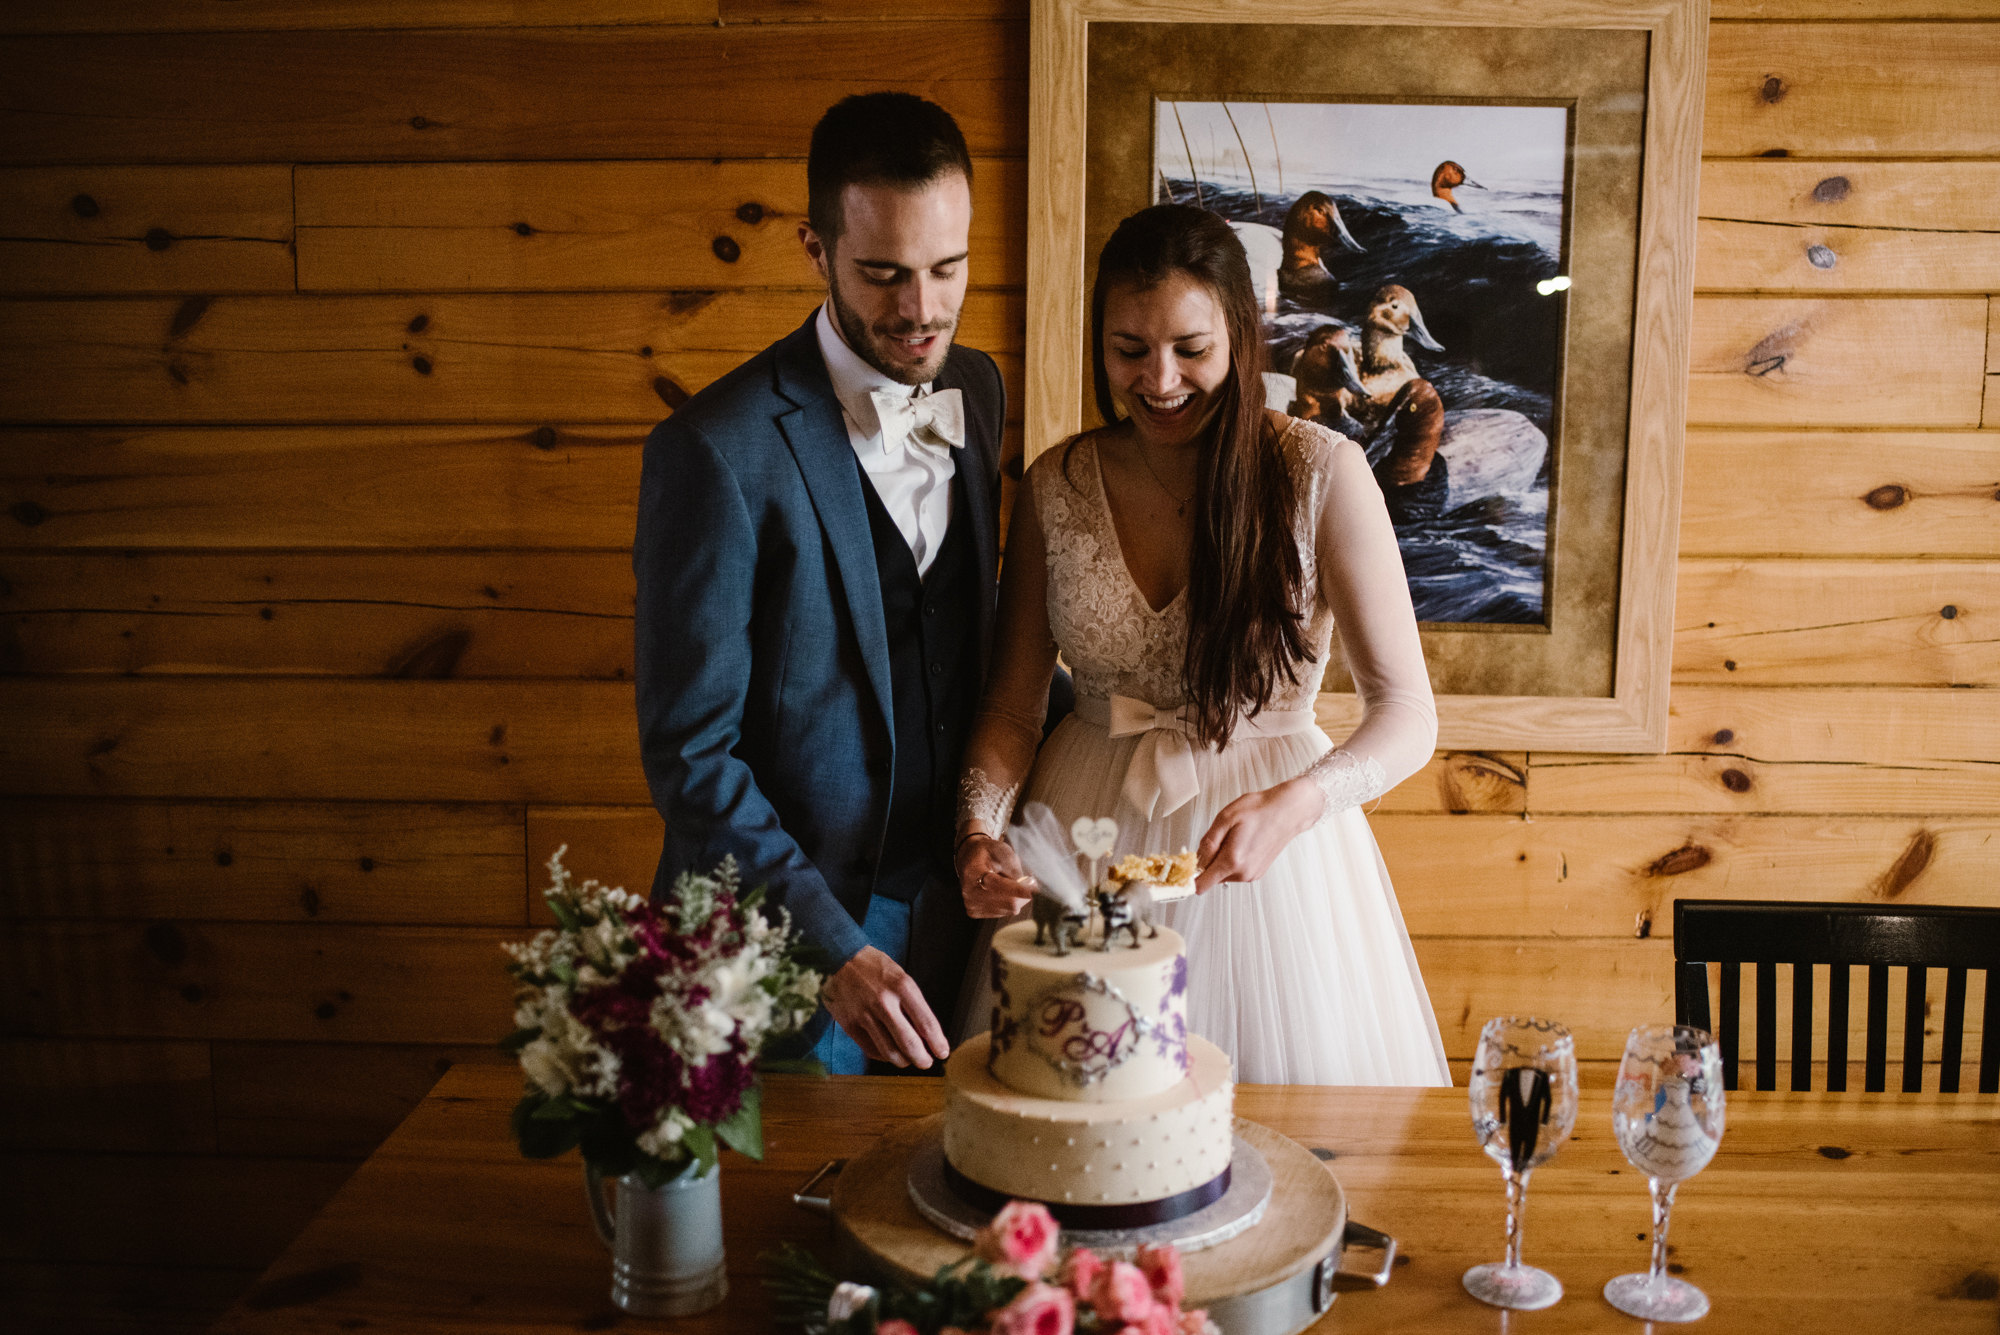 Paula and Andrew - Small Adventurous Wedding in Shenandoah National Park - Blue Ridge Mountain Wedding - White Sails Creative - Mountain Elopement_57.jpg